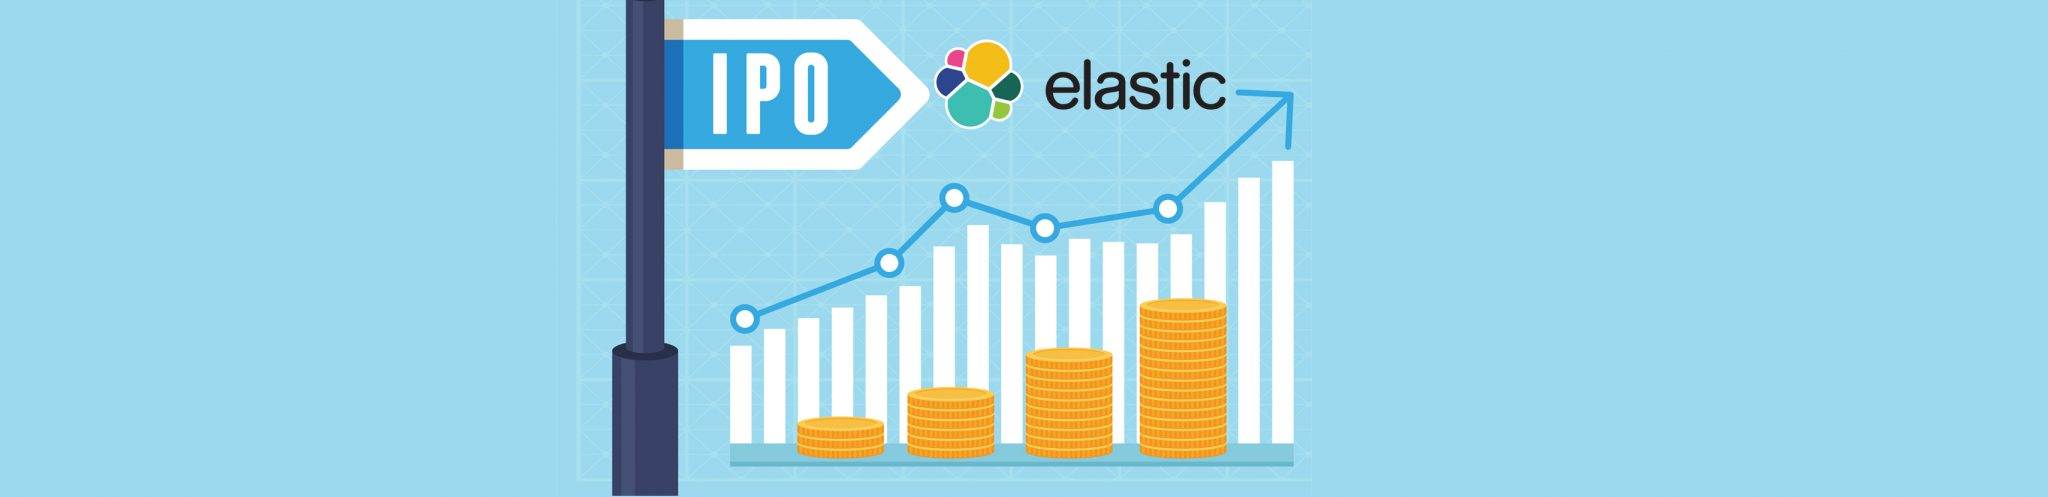 Elastic IPO — All you need to know about this $252 million cash raise